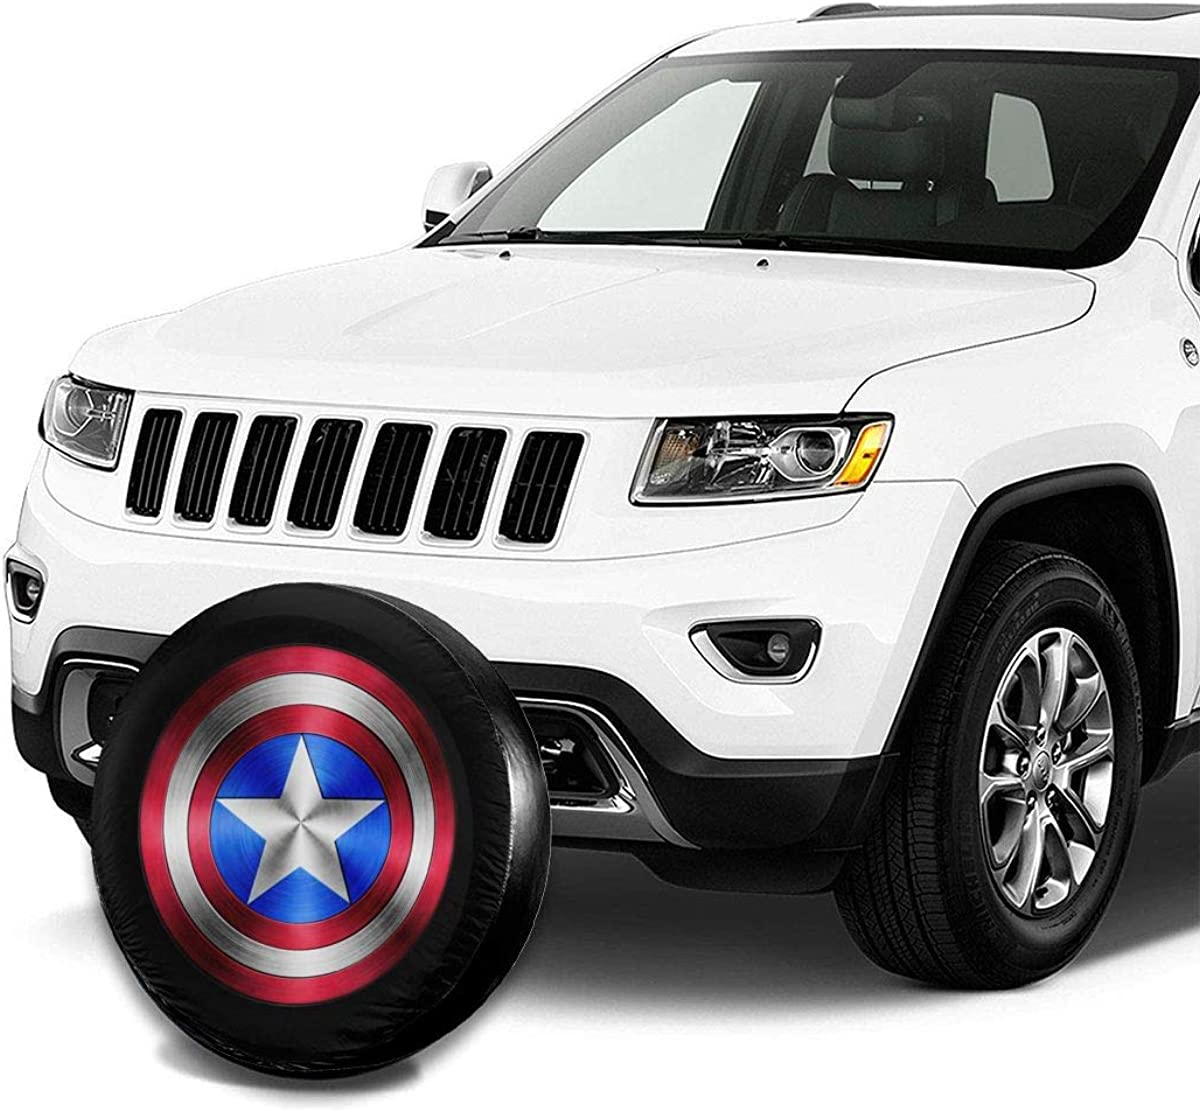 Car Truck Wheel 14 15 16 17 Inches Trailer RV Universal Fit for Jeep DEETU Spare Tire Cover